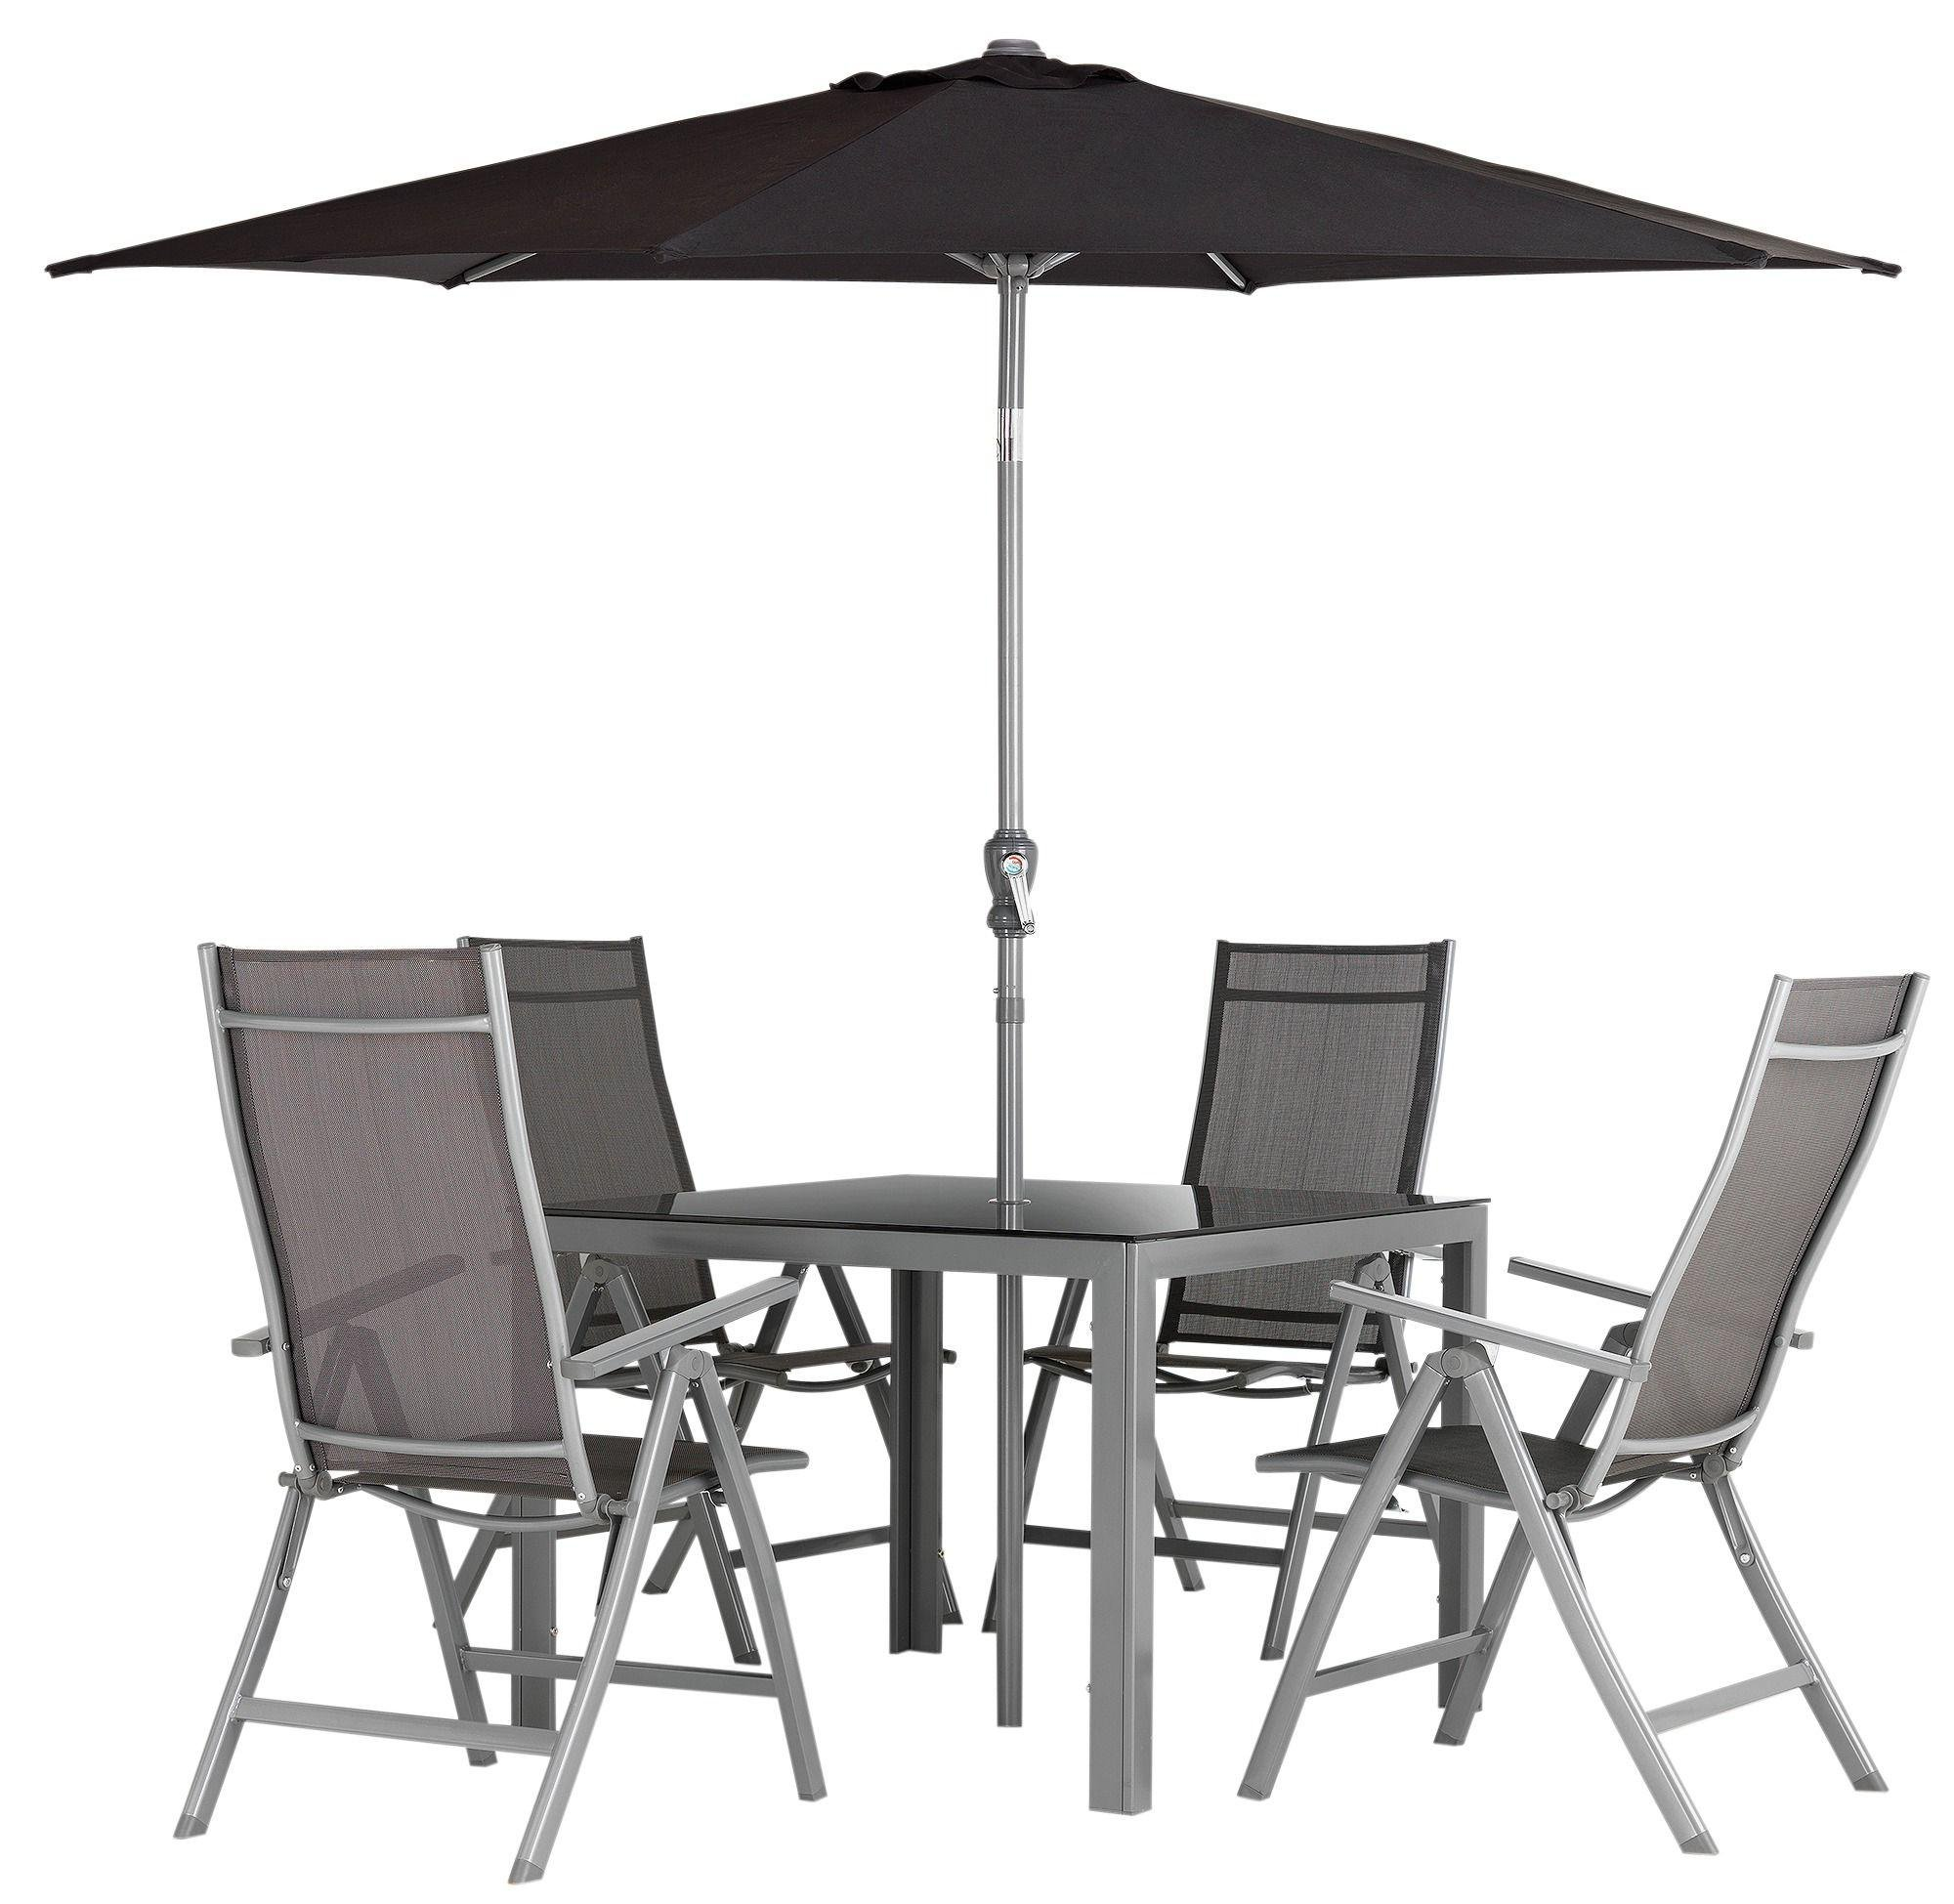 Collection Malibu 4 Seater Steel Patio Set  sc 1 st  Argos & Buy Collection Malibu 4 Seater Steel Patio Set at Argos.co.uk ... islam-shia.org